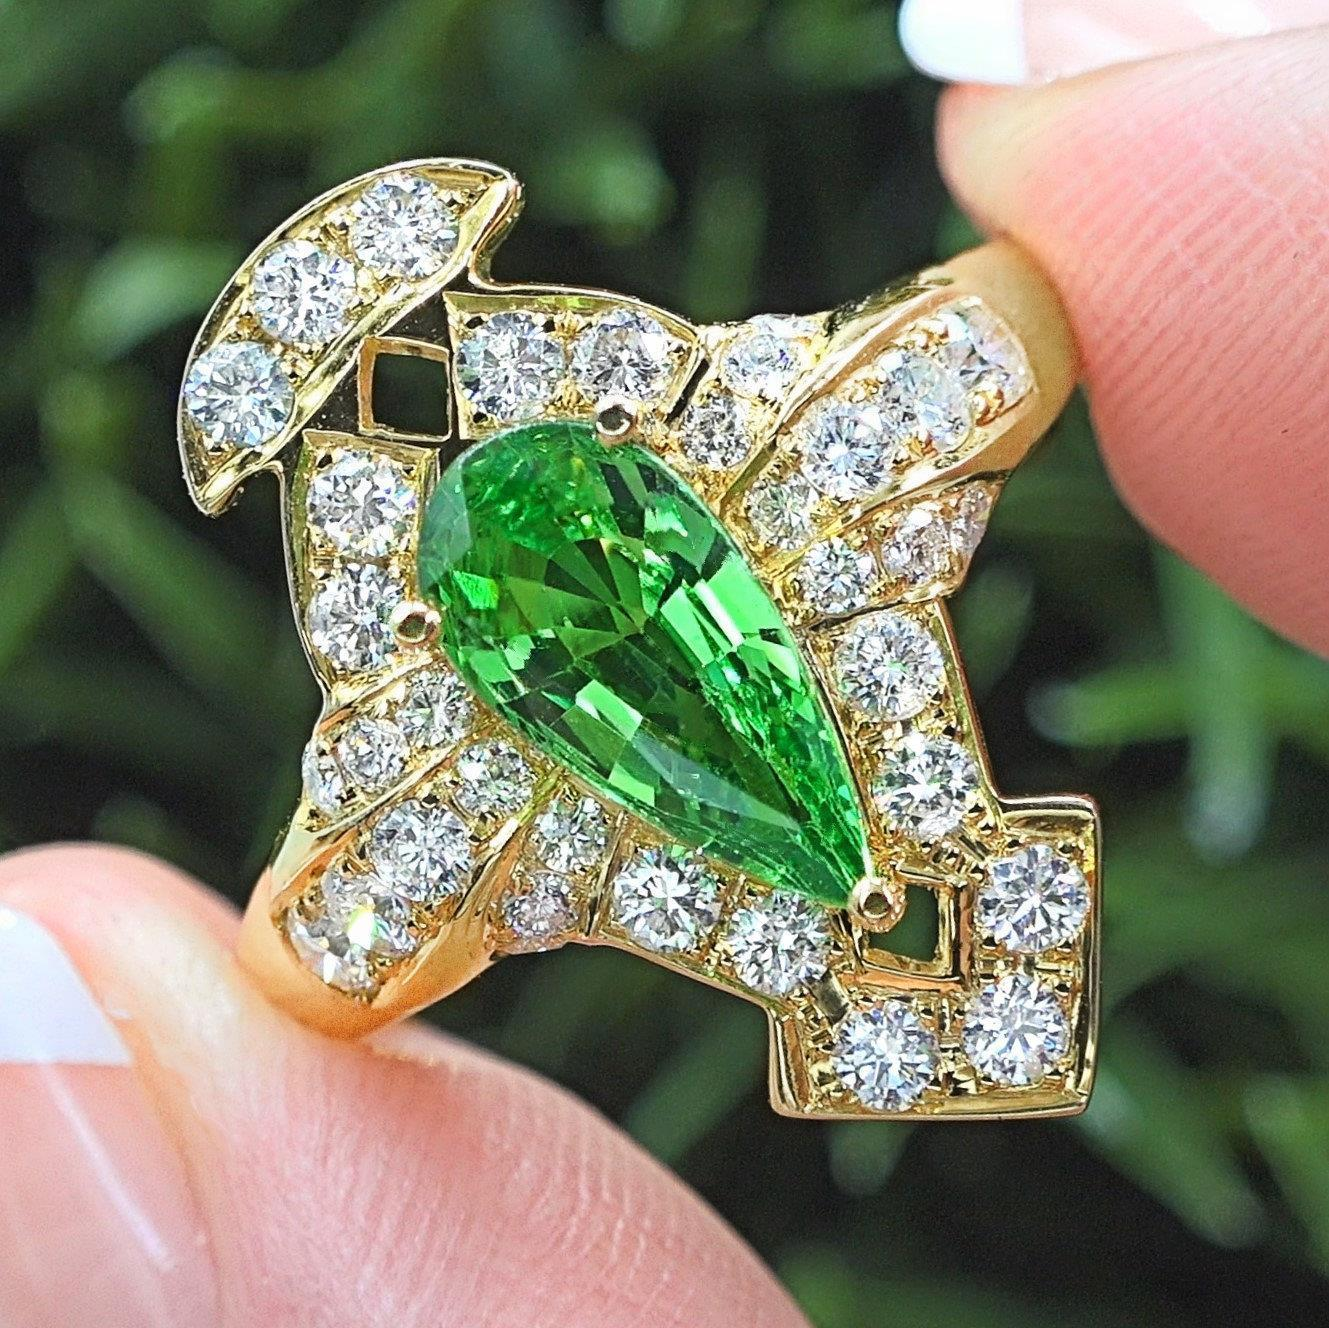 Tsavorite Garnet Diamond 18k Gold Ring 3.08 TCW GIA Certified Natural Estate Gem